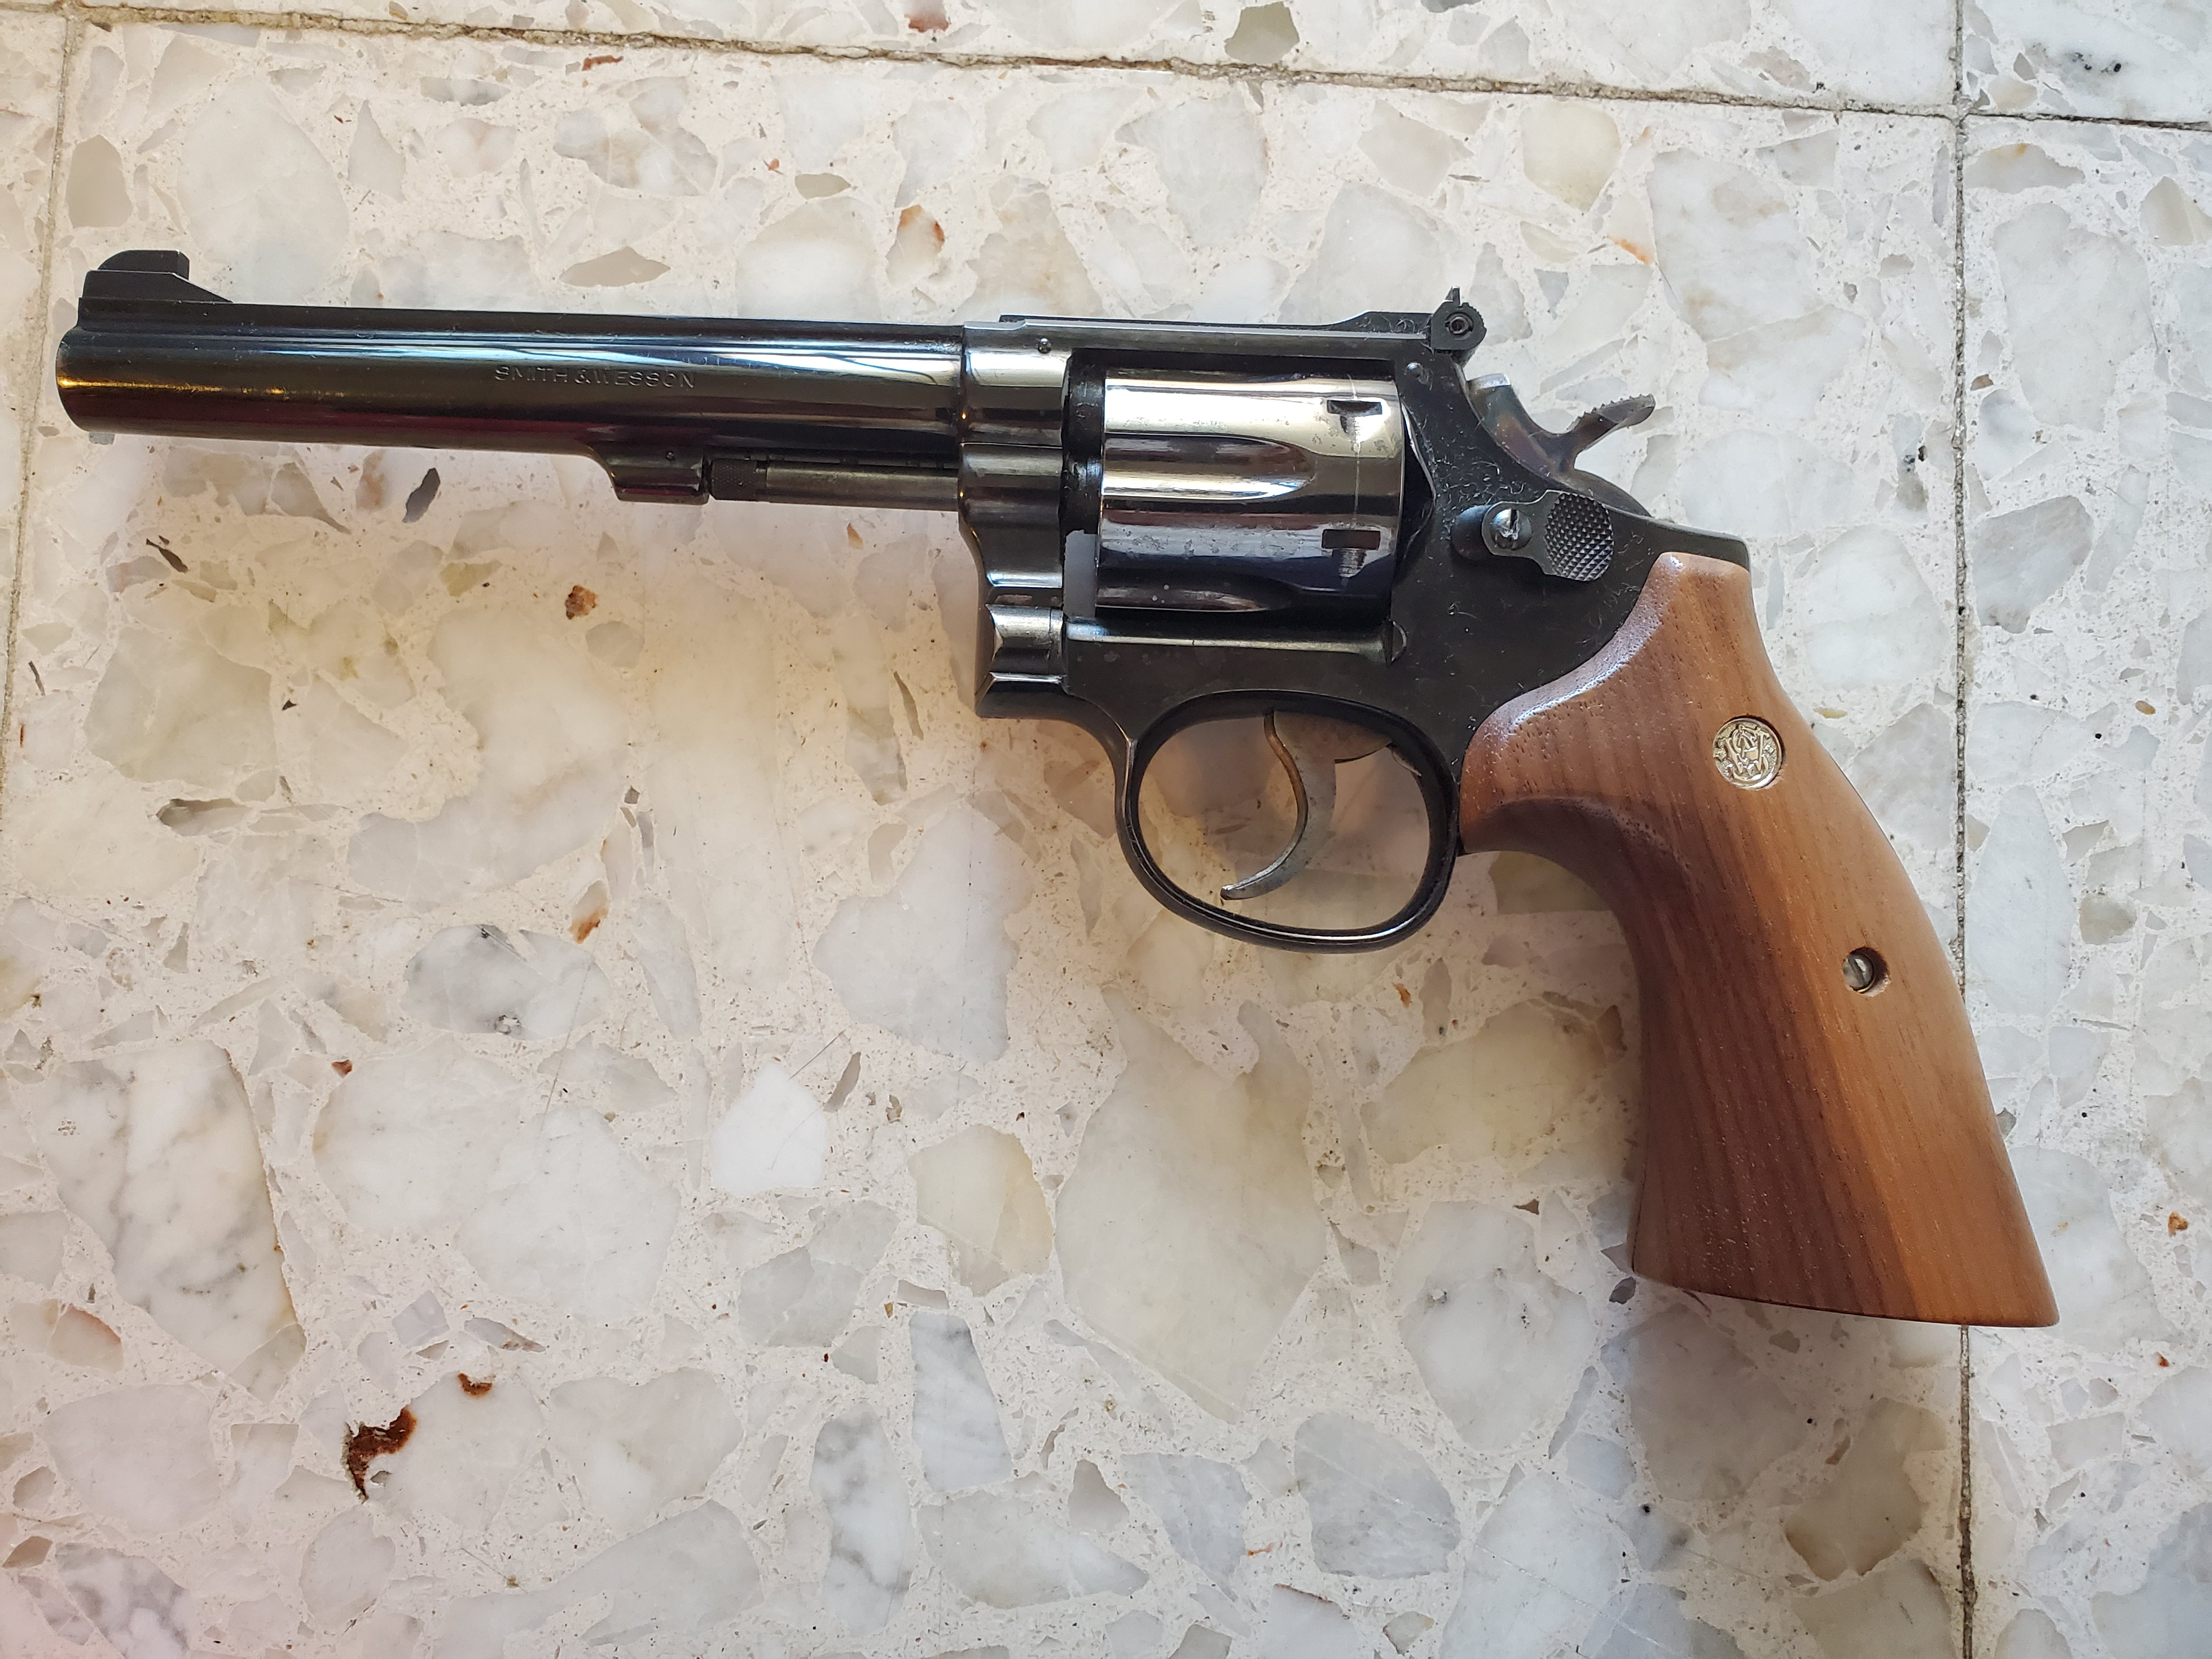 WTS:  Smith and Wesson Model 17-4, 22 LR-20190705_171251.jpg